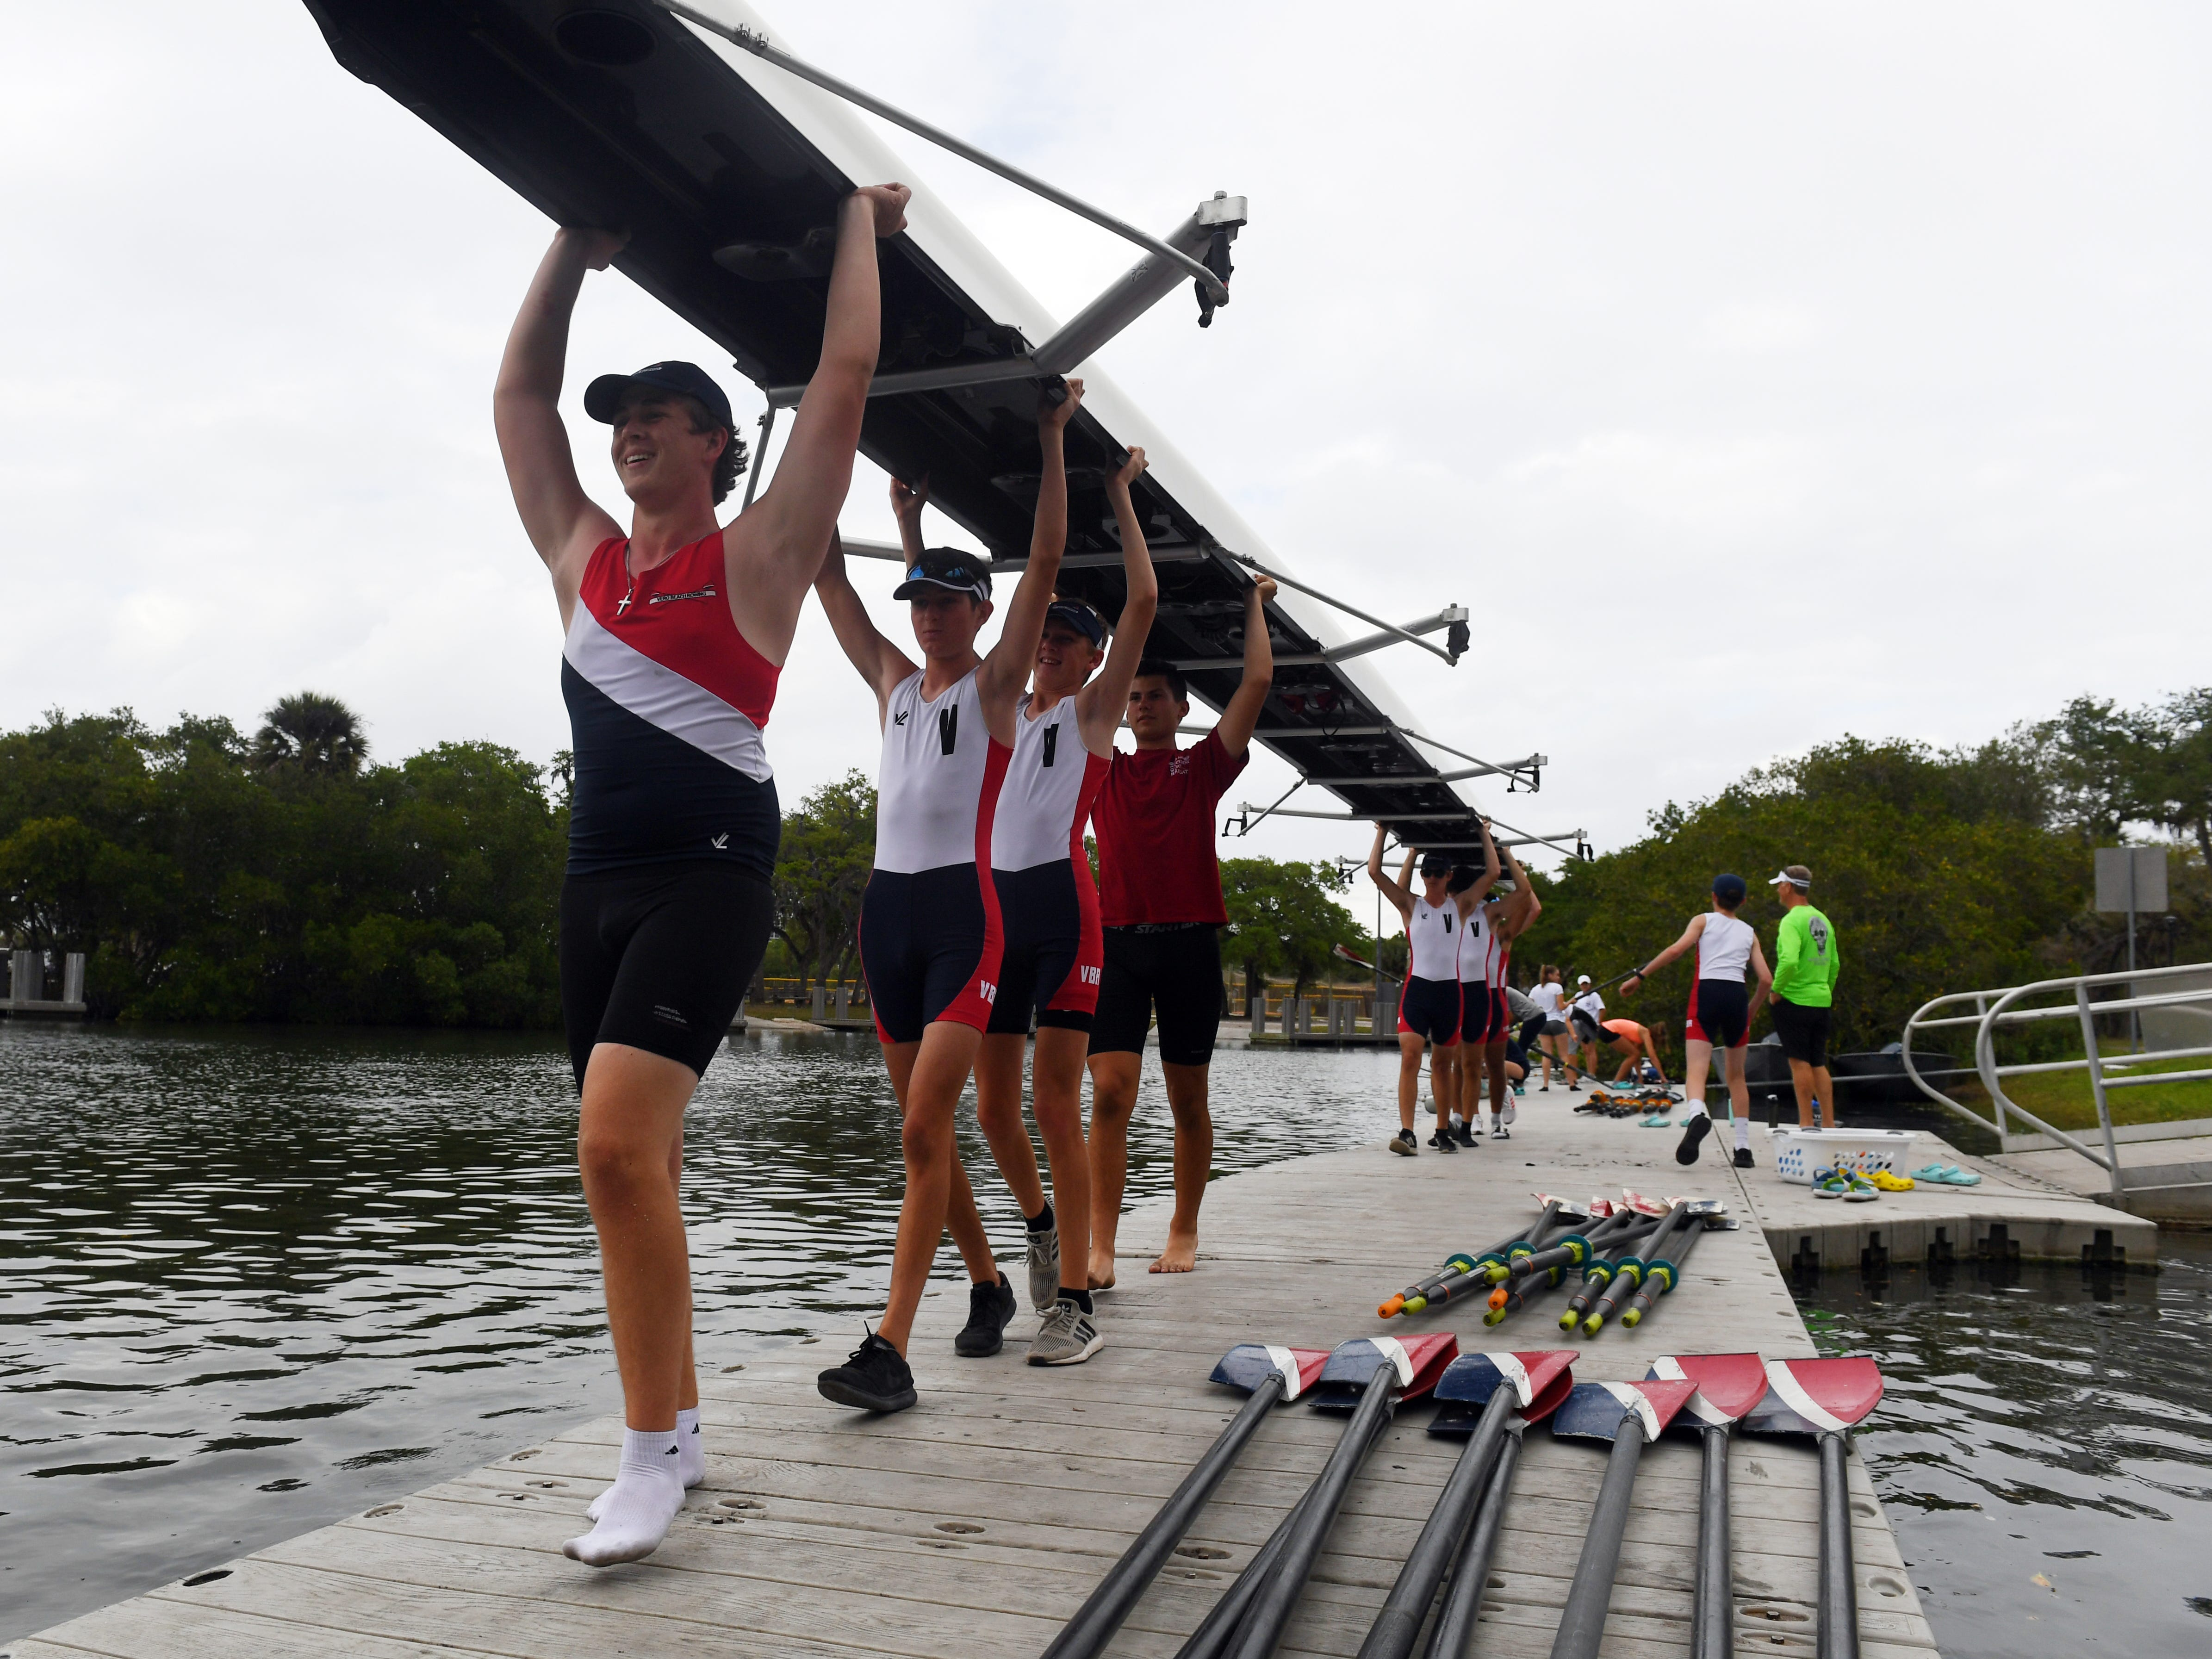 Vero Beach Rowing, a non-profit community organization in Vero Beach, has grown in popularity and membership over the last few years and will begin a $2.5 million construction project on a new boathouse at McWilliams Park in Vero Beach. The club has both junior and adult programs with about 30 and 90 members respectively.